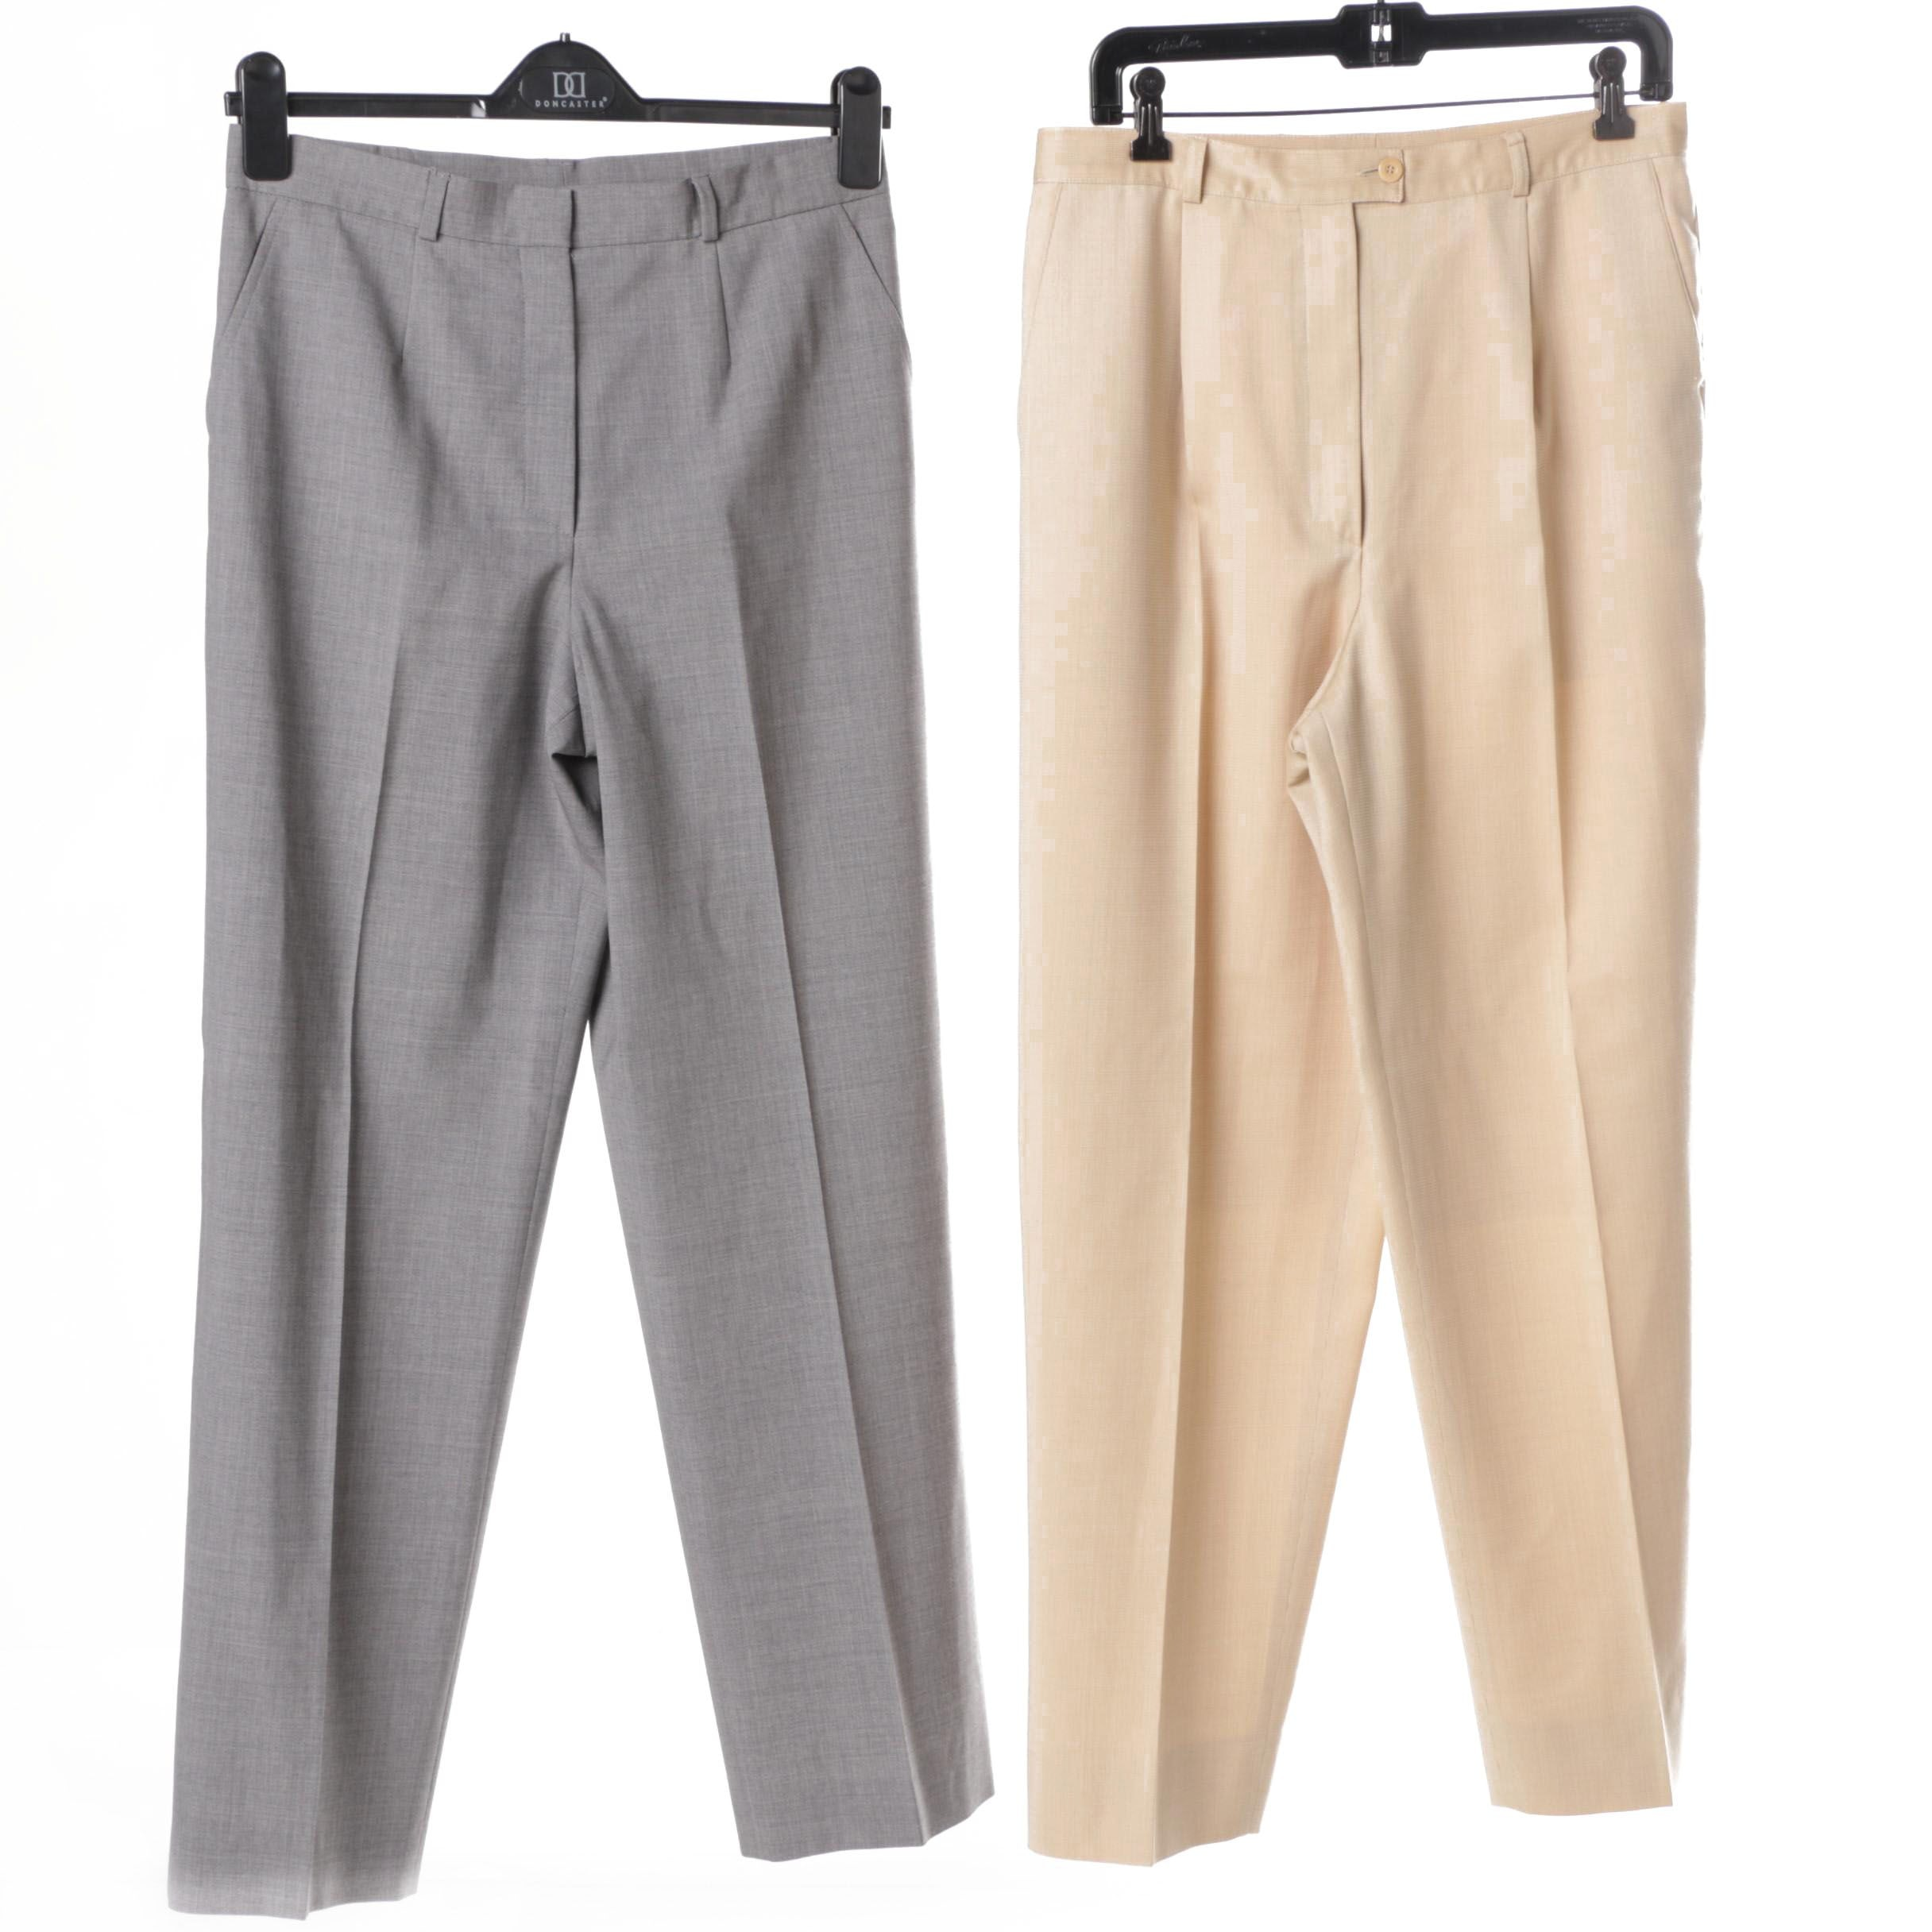 Two Pairs of Women's Trousers by Zanella